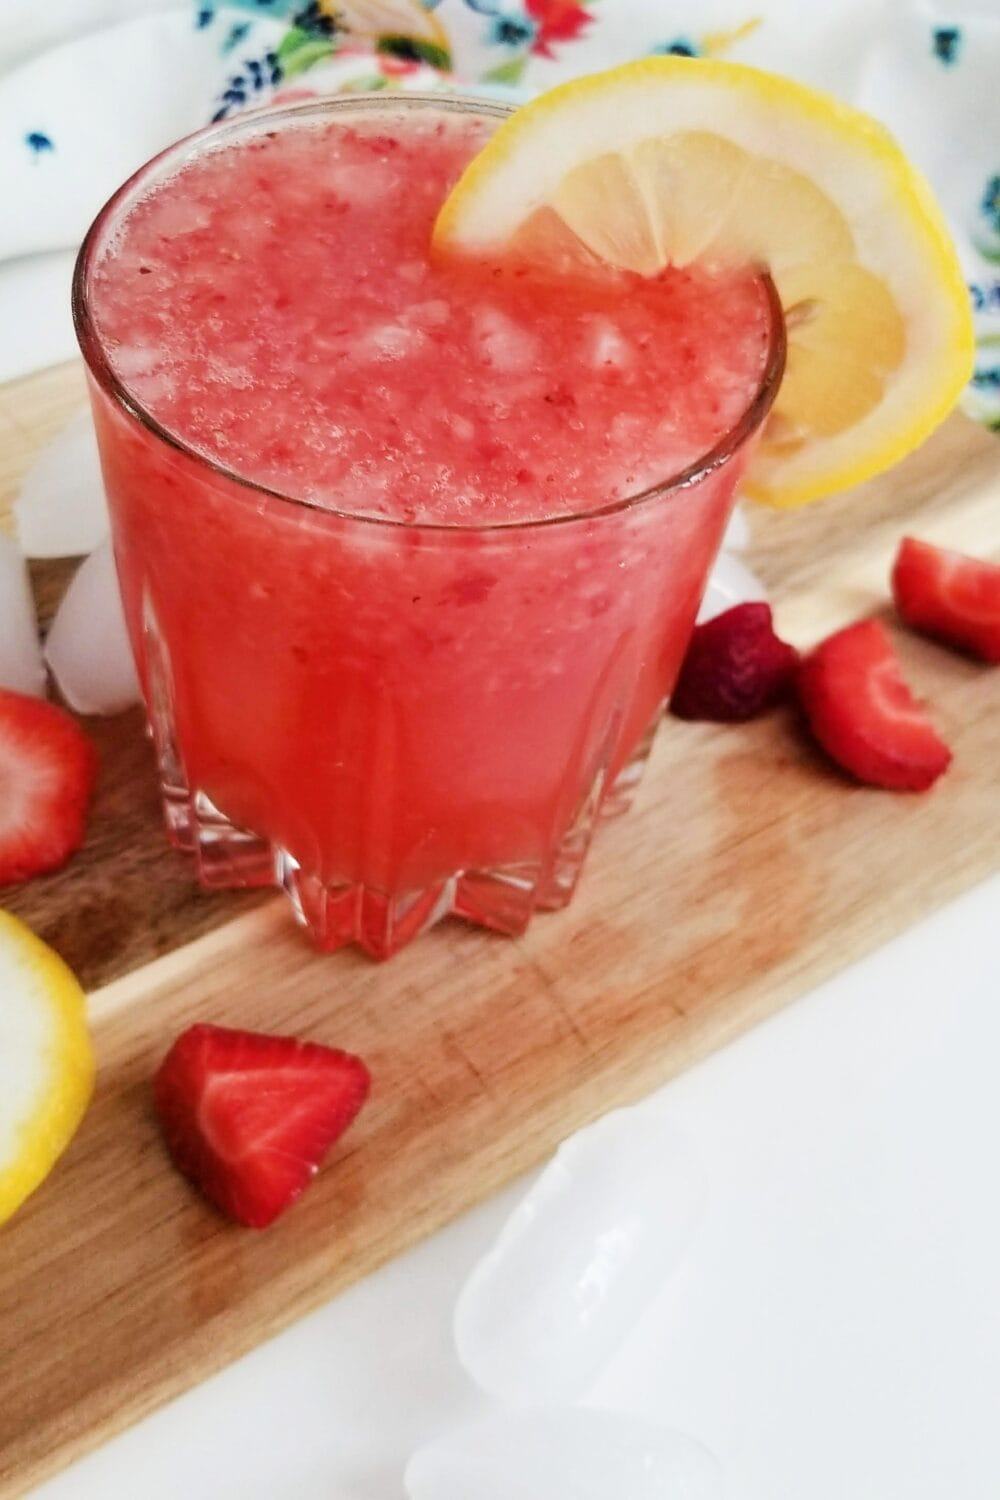 red frozen drink with lemonade slice garnish in clear glass on top of wood cutting board with strawberries and lemon slices scattered on it and white floral napkin in the background